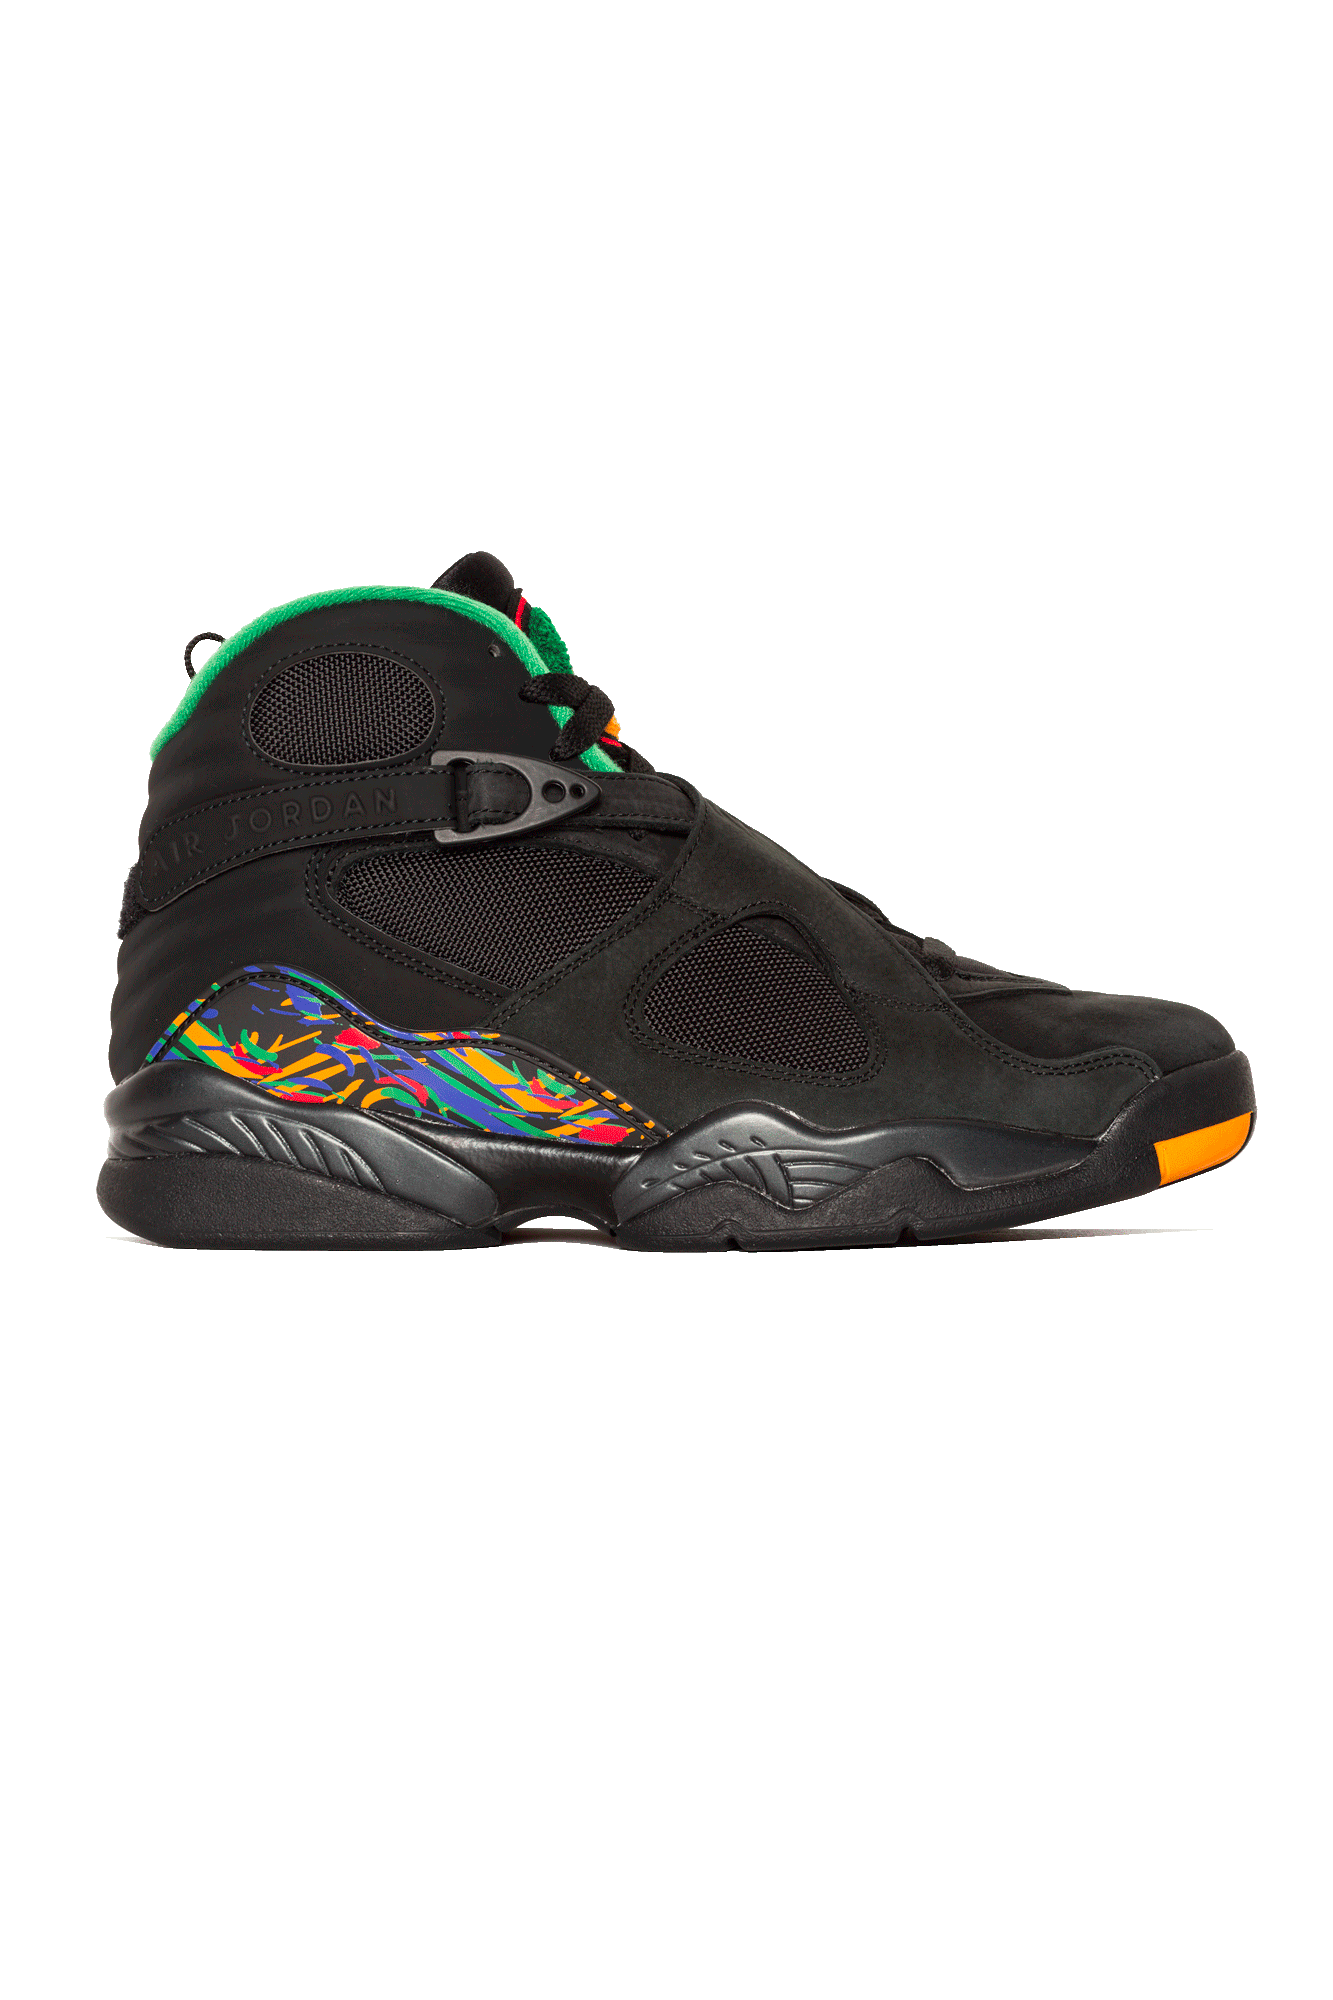 Sneakers Air Jordan 8 Retro Black - One Block Down